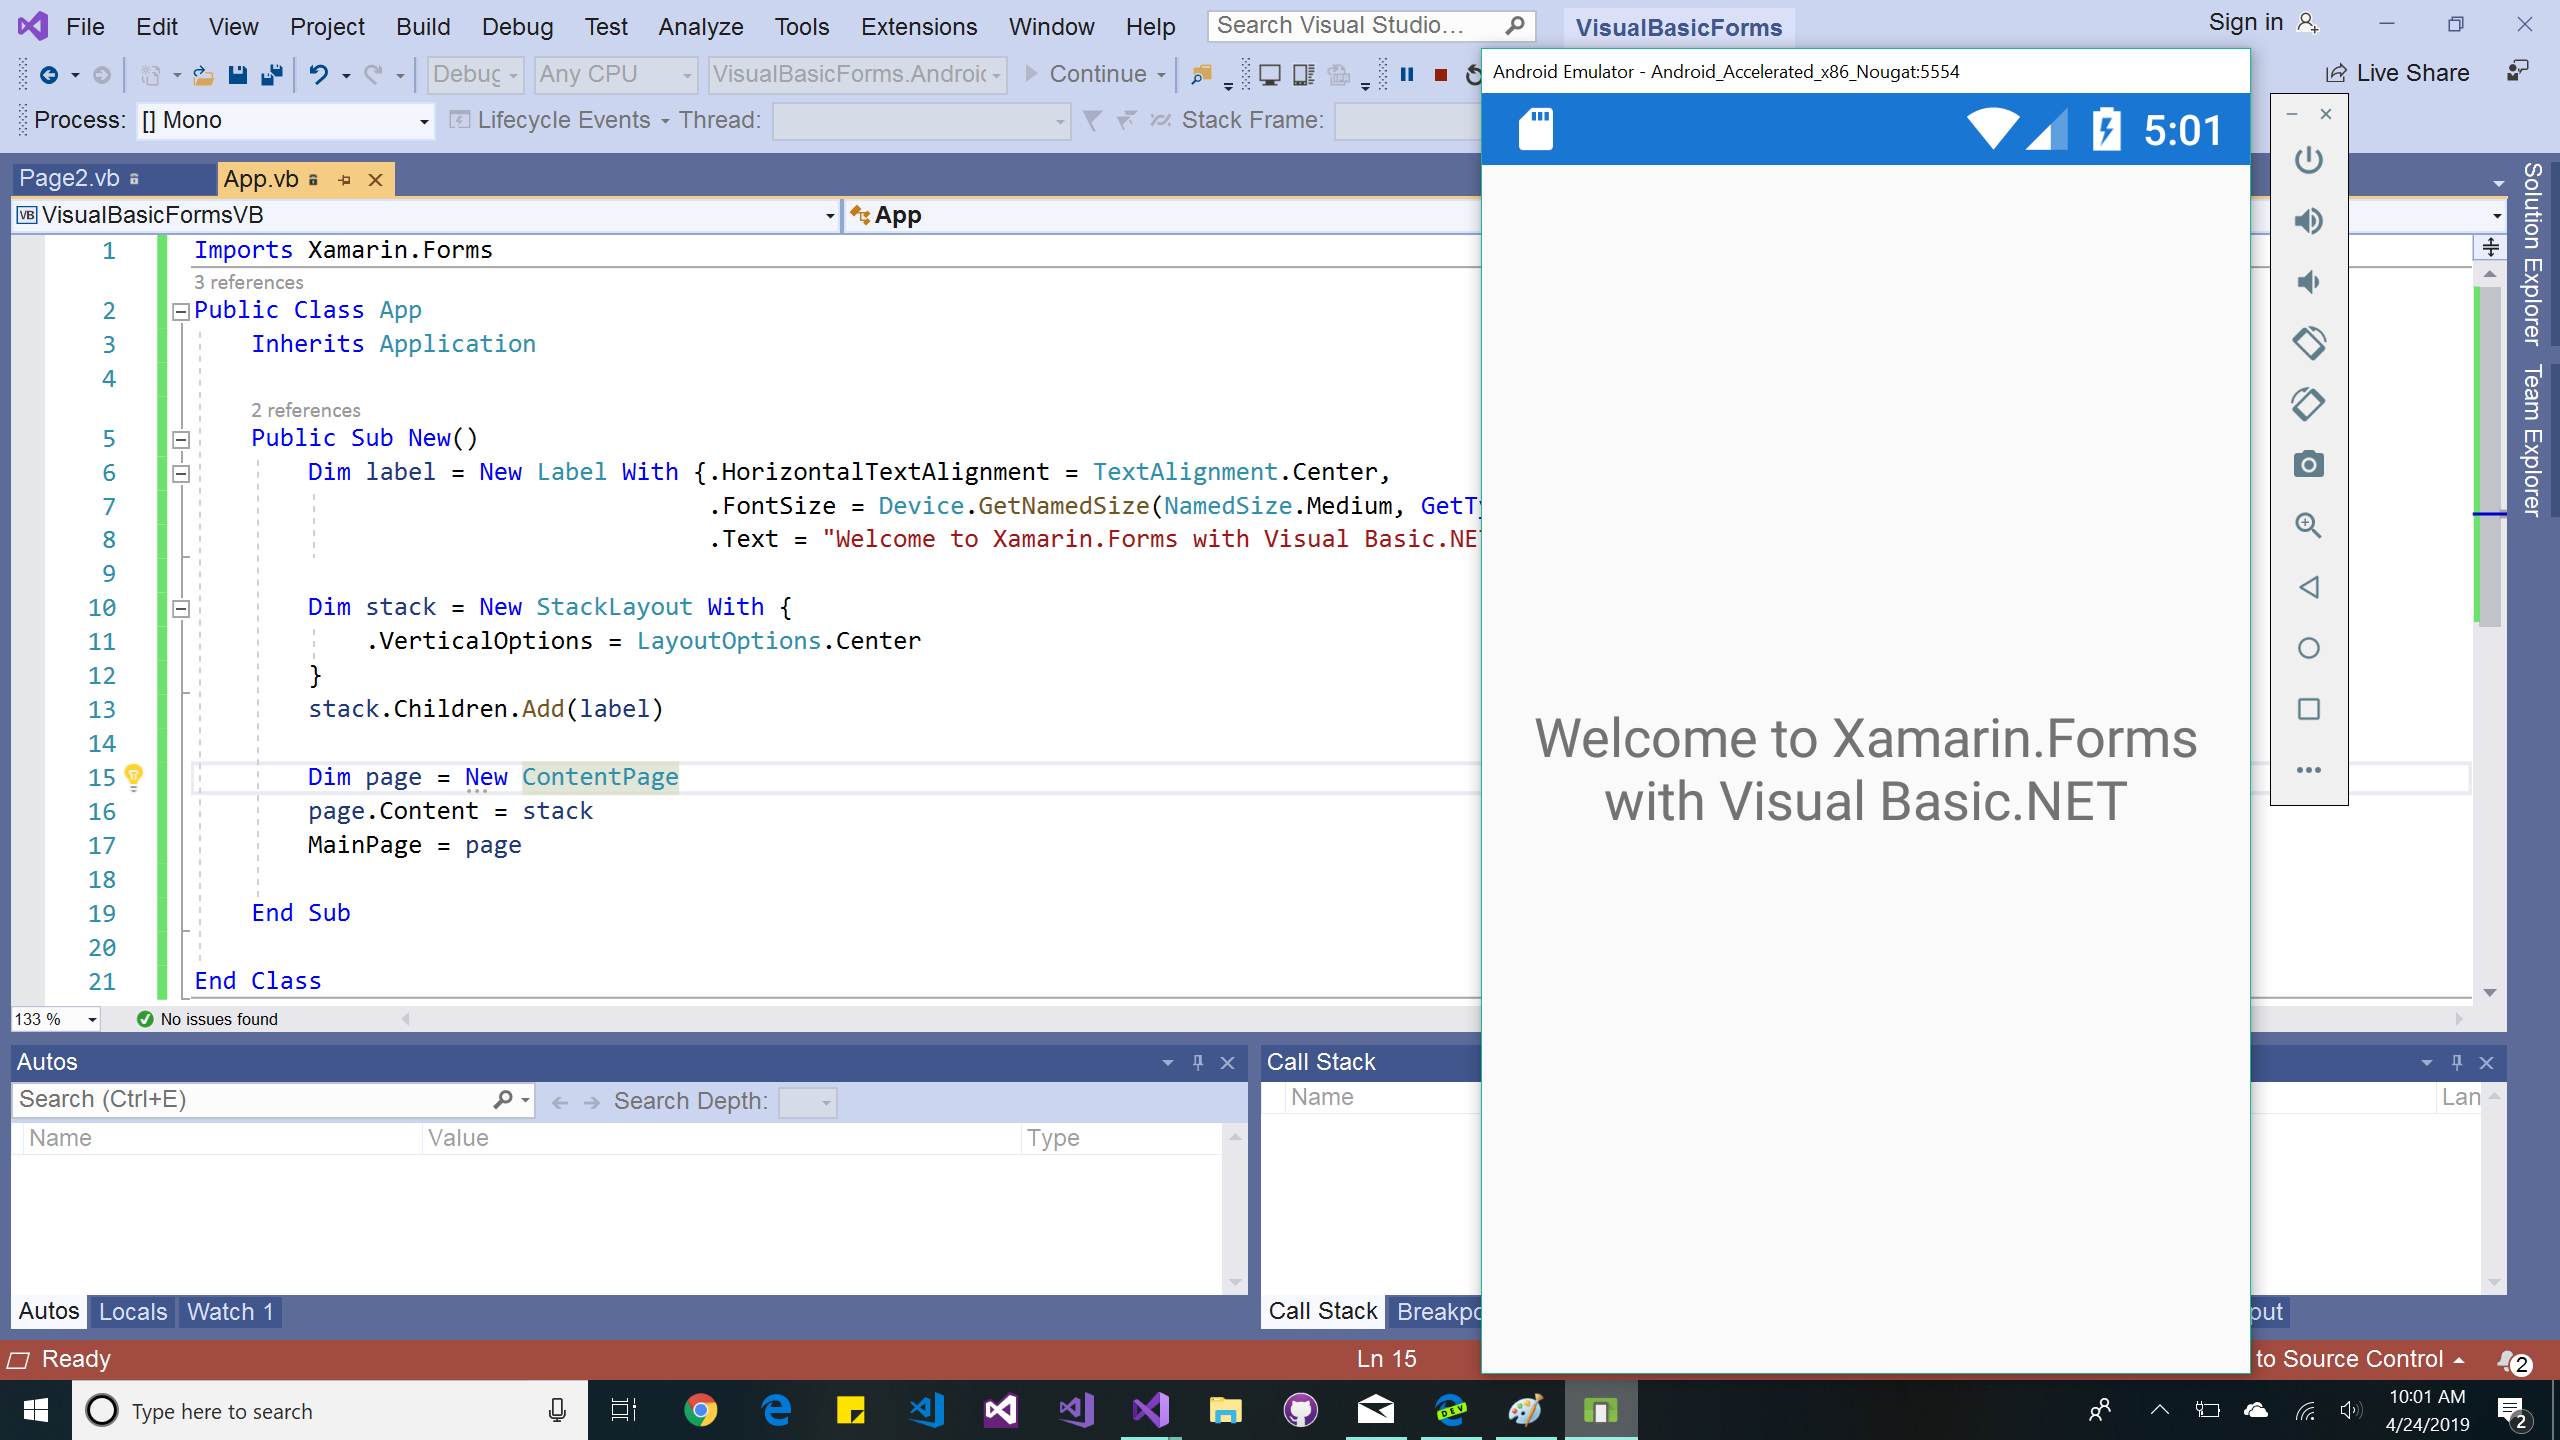 mobile-samples/VisualBasic at master · xamarin/mobile